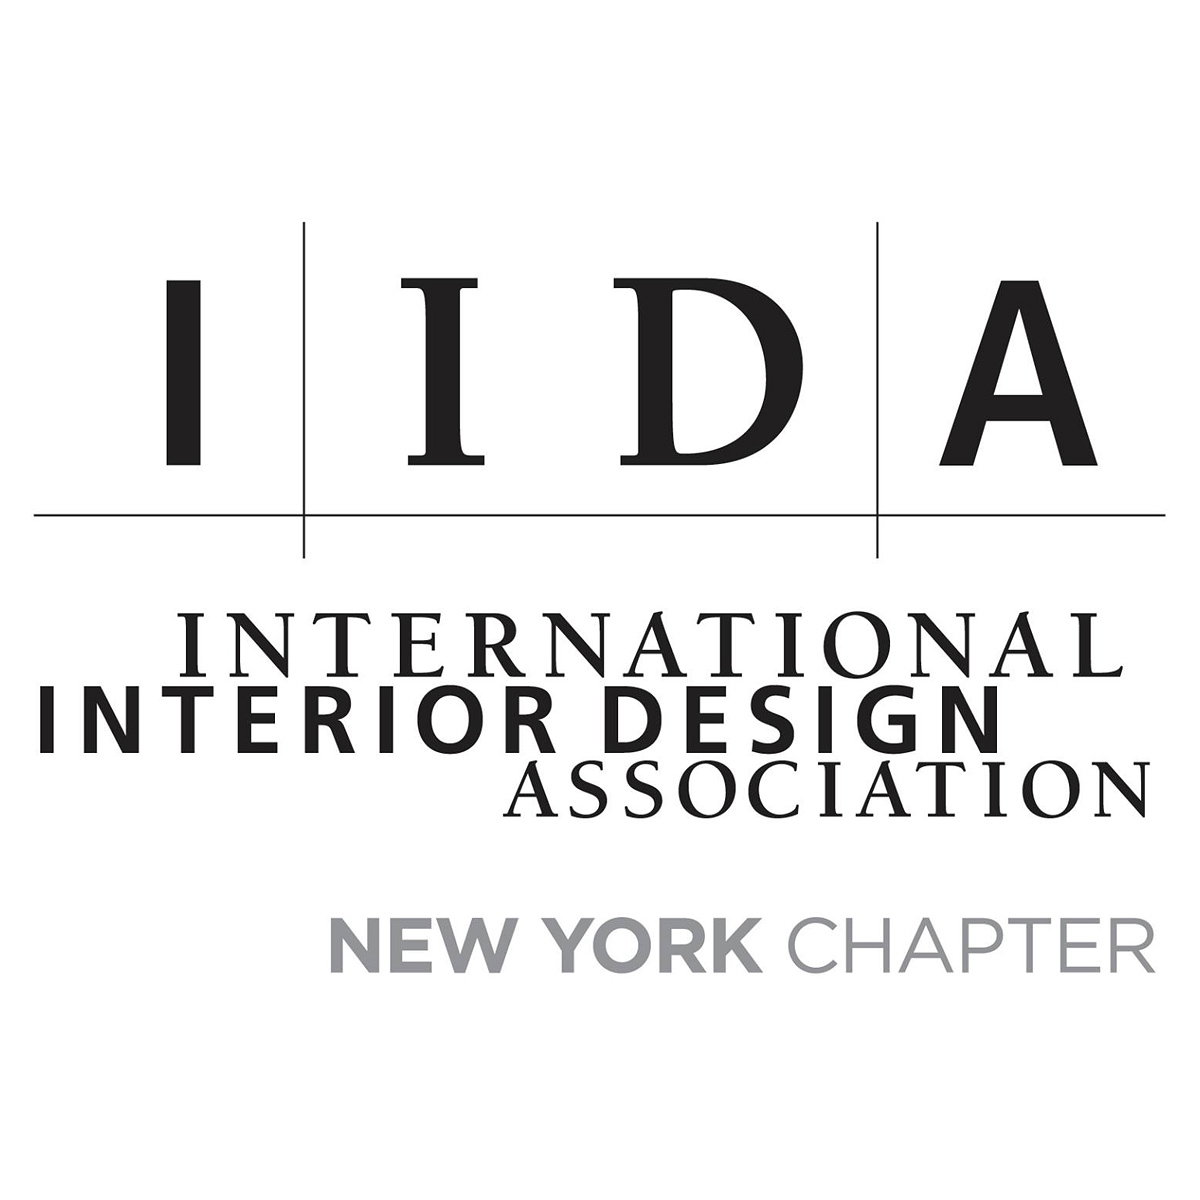 The Emancipation of Everything - IIDA NY Lecture to Analyze Impact of Societal Trends on Design